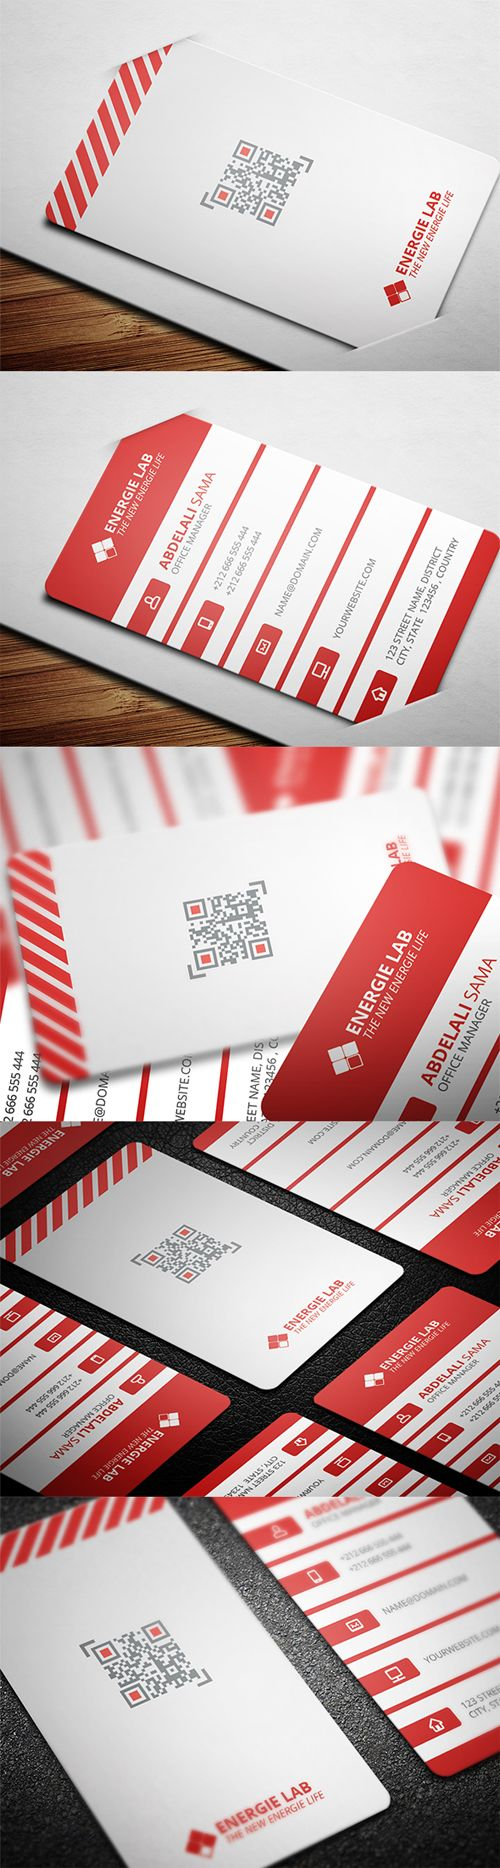 business cards template design - 6 #businesscards #creativebusinesscards #2014design